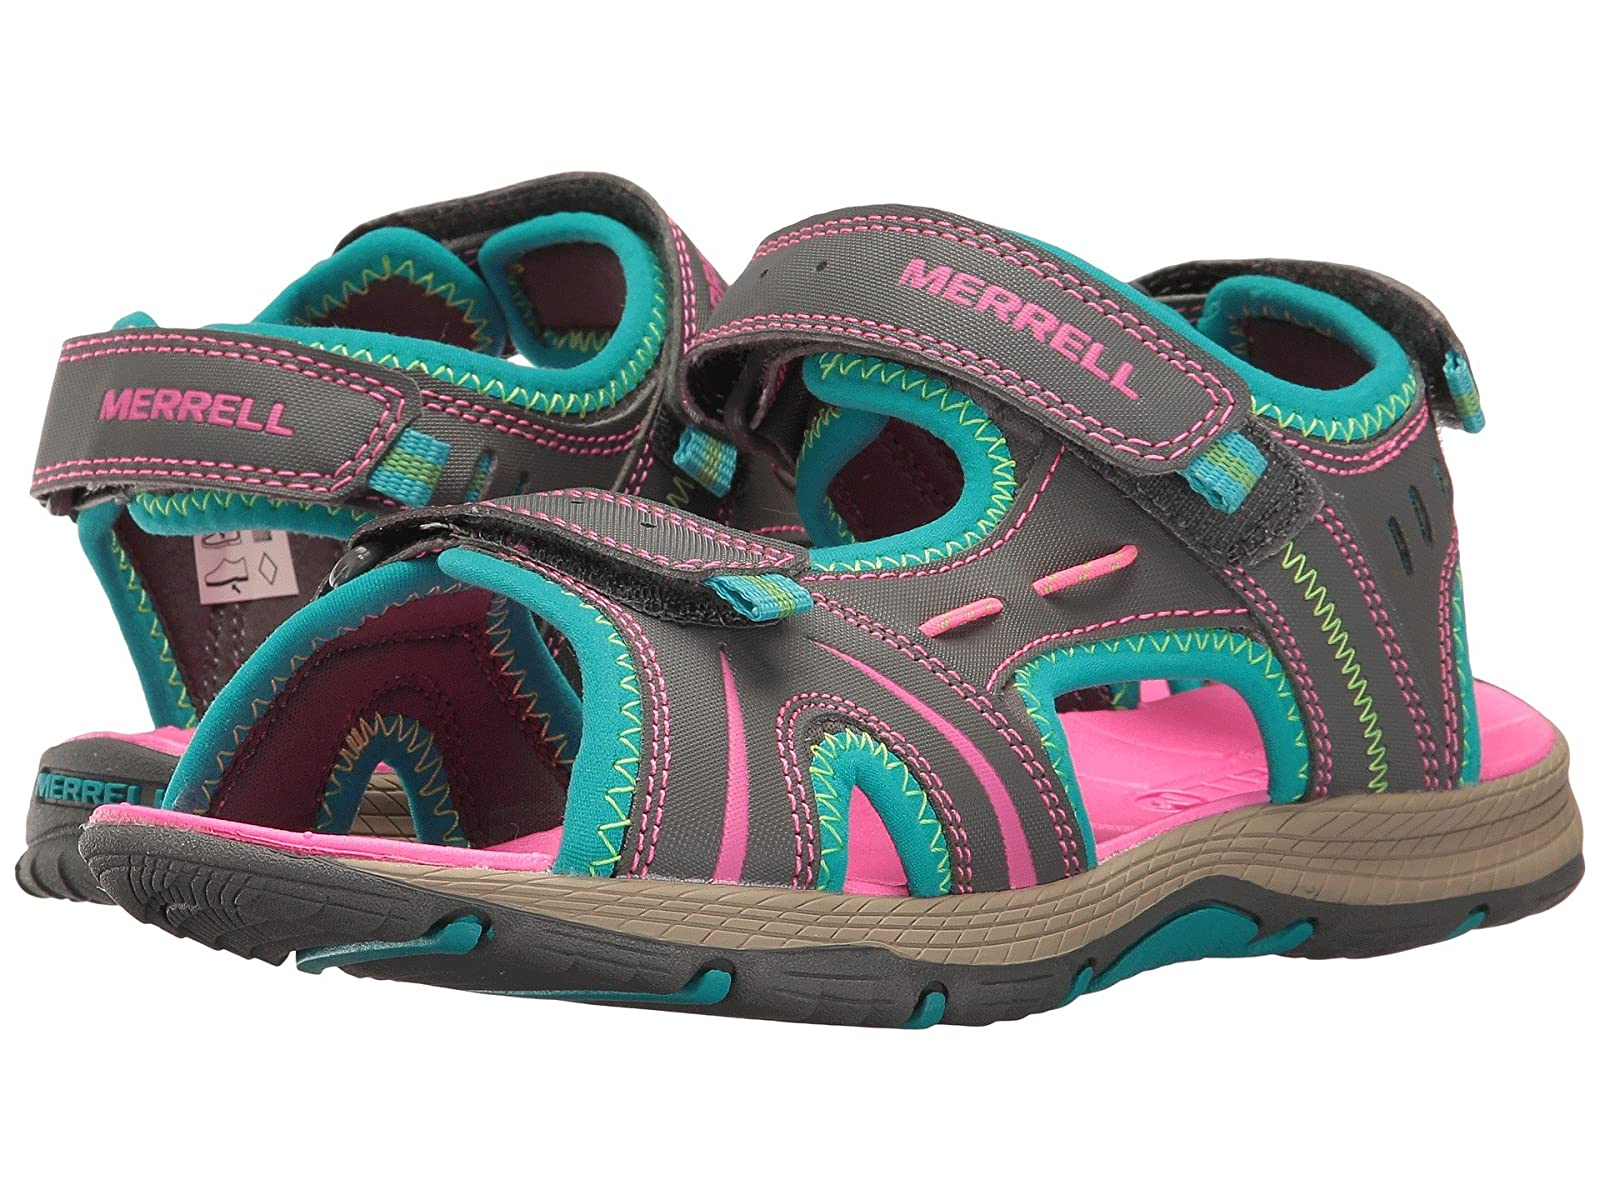 Merrell Kids Panther (Big Kid)Cheap and distinctive eye-catching shoes